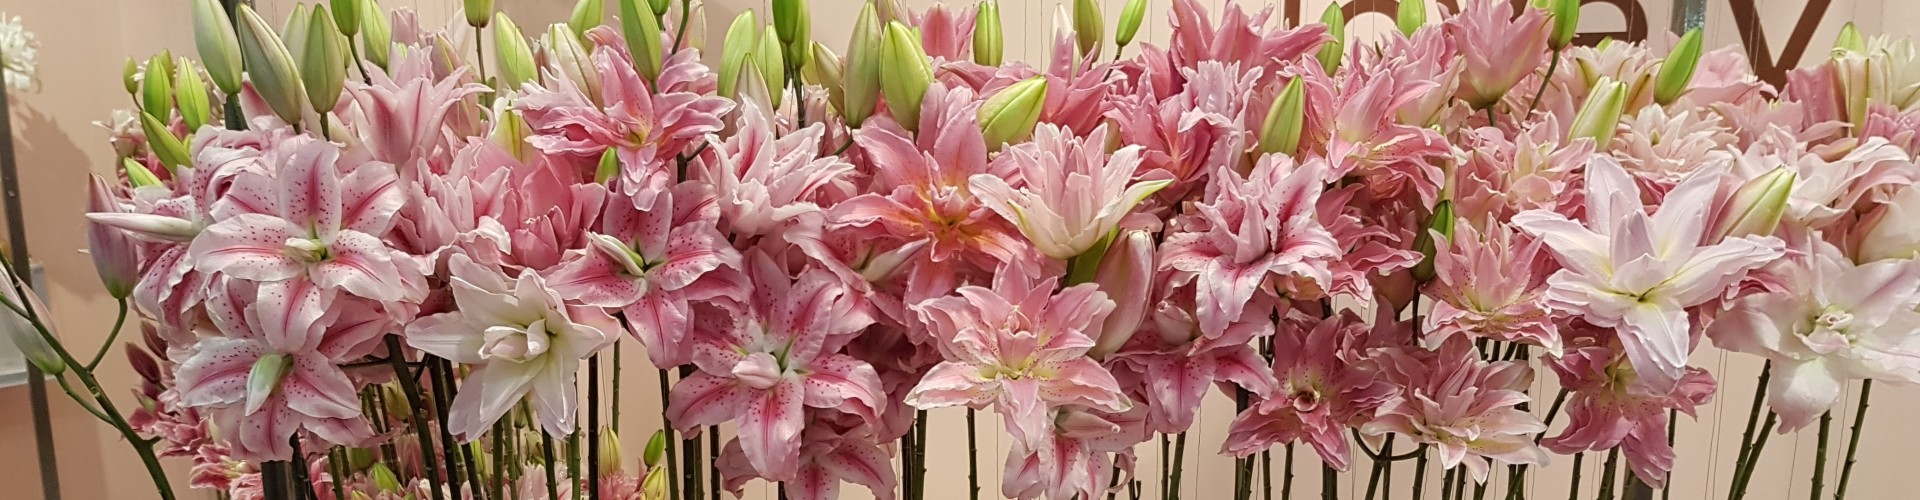 Double flowering Lilies